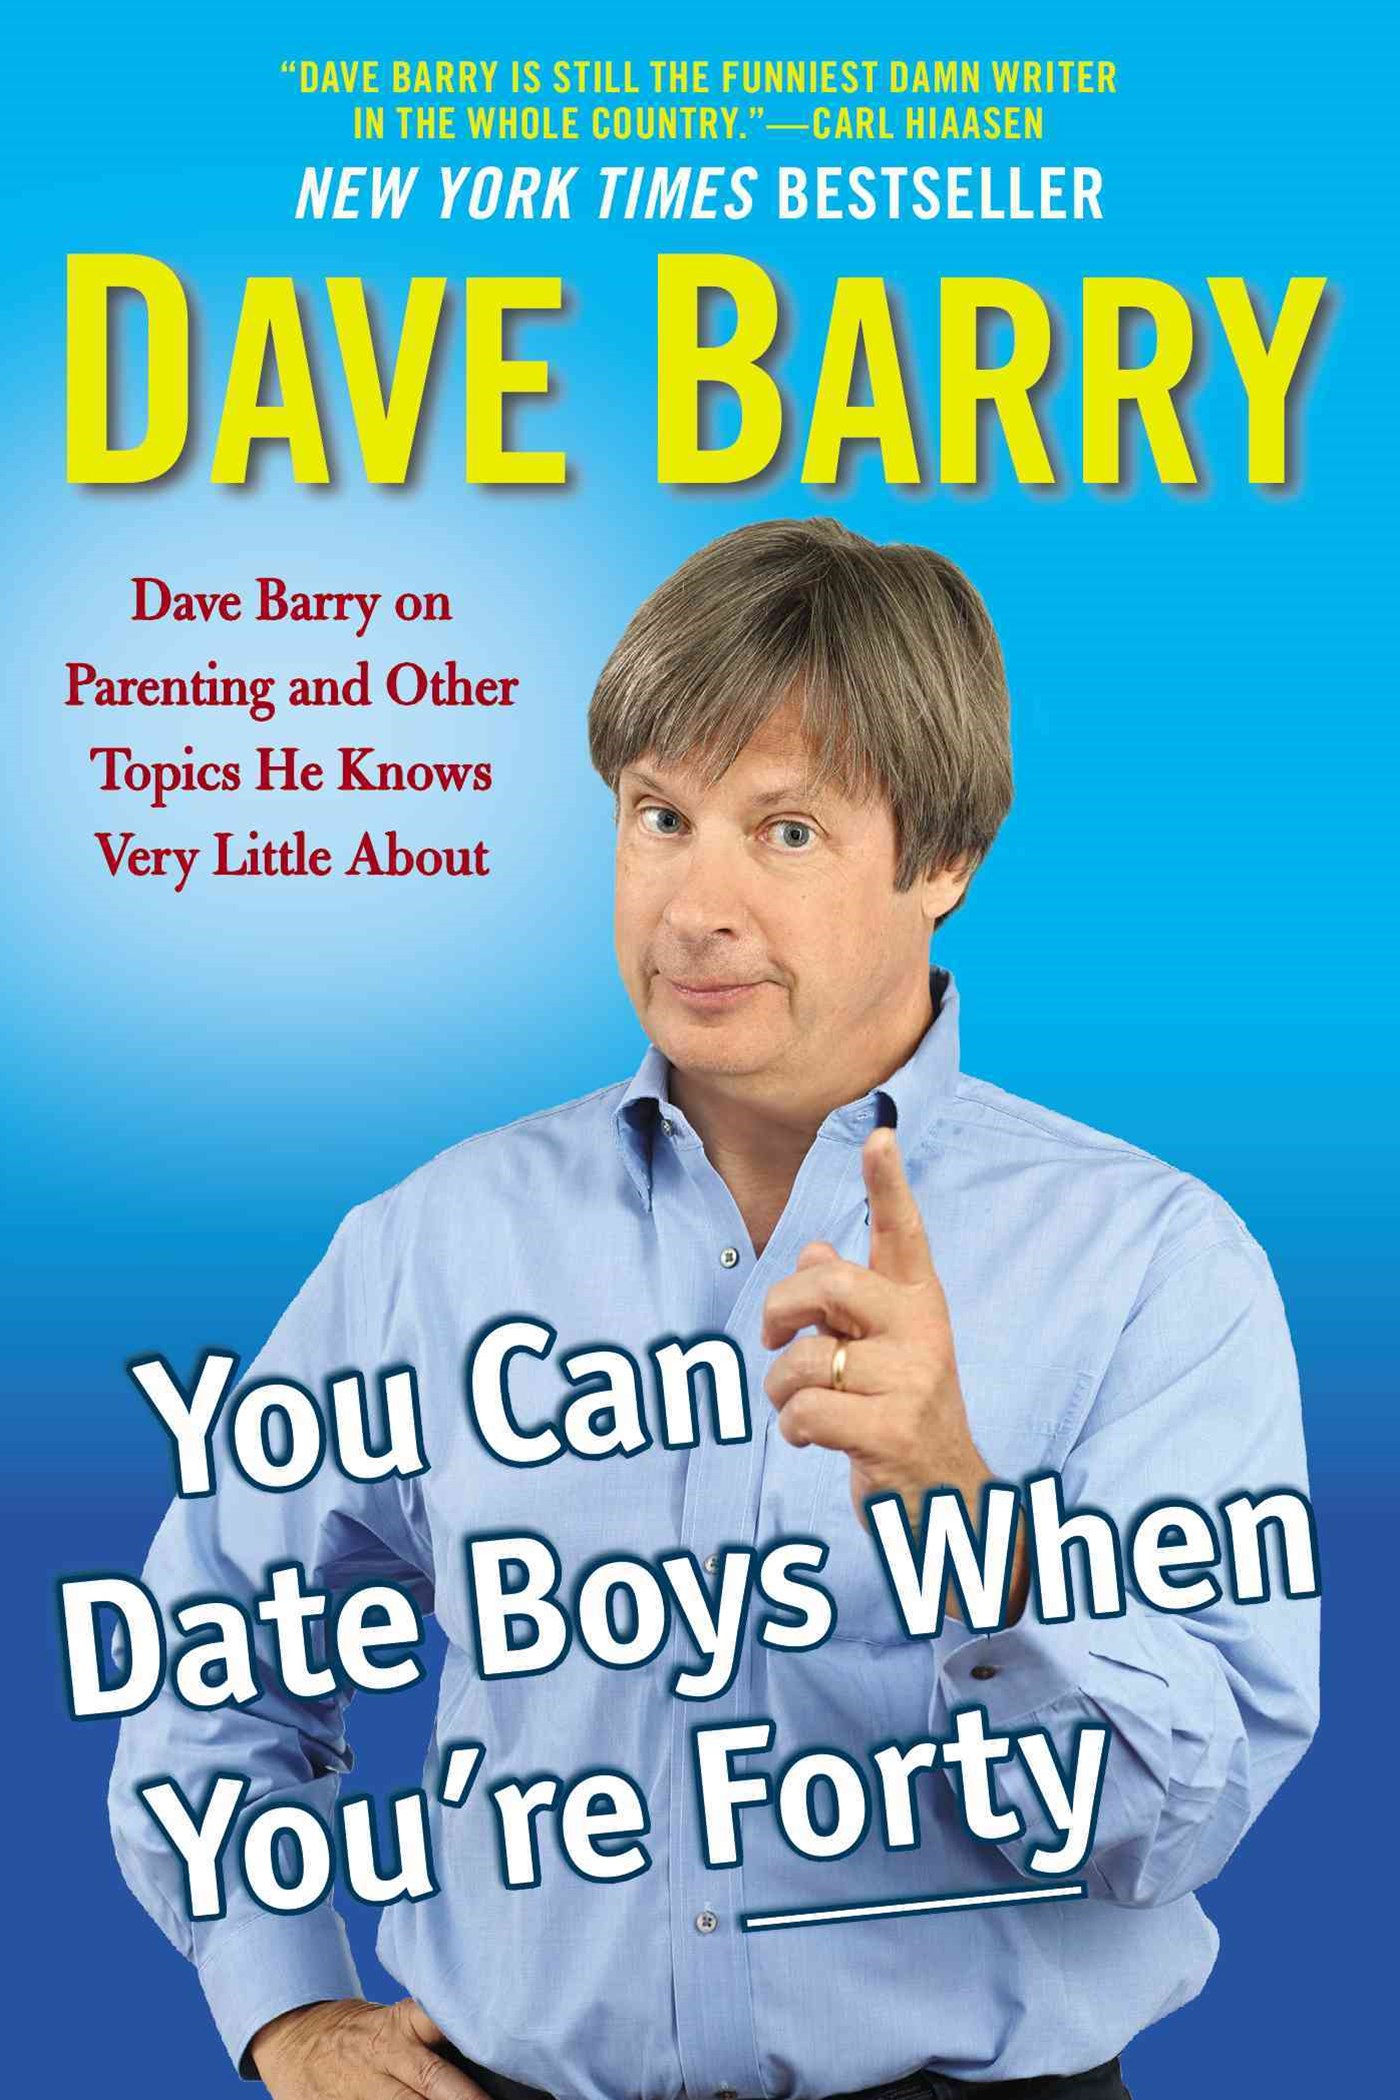 You Can Date Boys When You're Forty: Dave Barry on Parenting and Other Topics He Knows Very Little